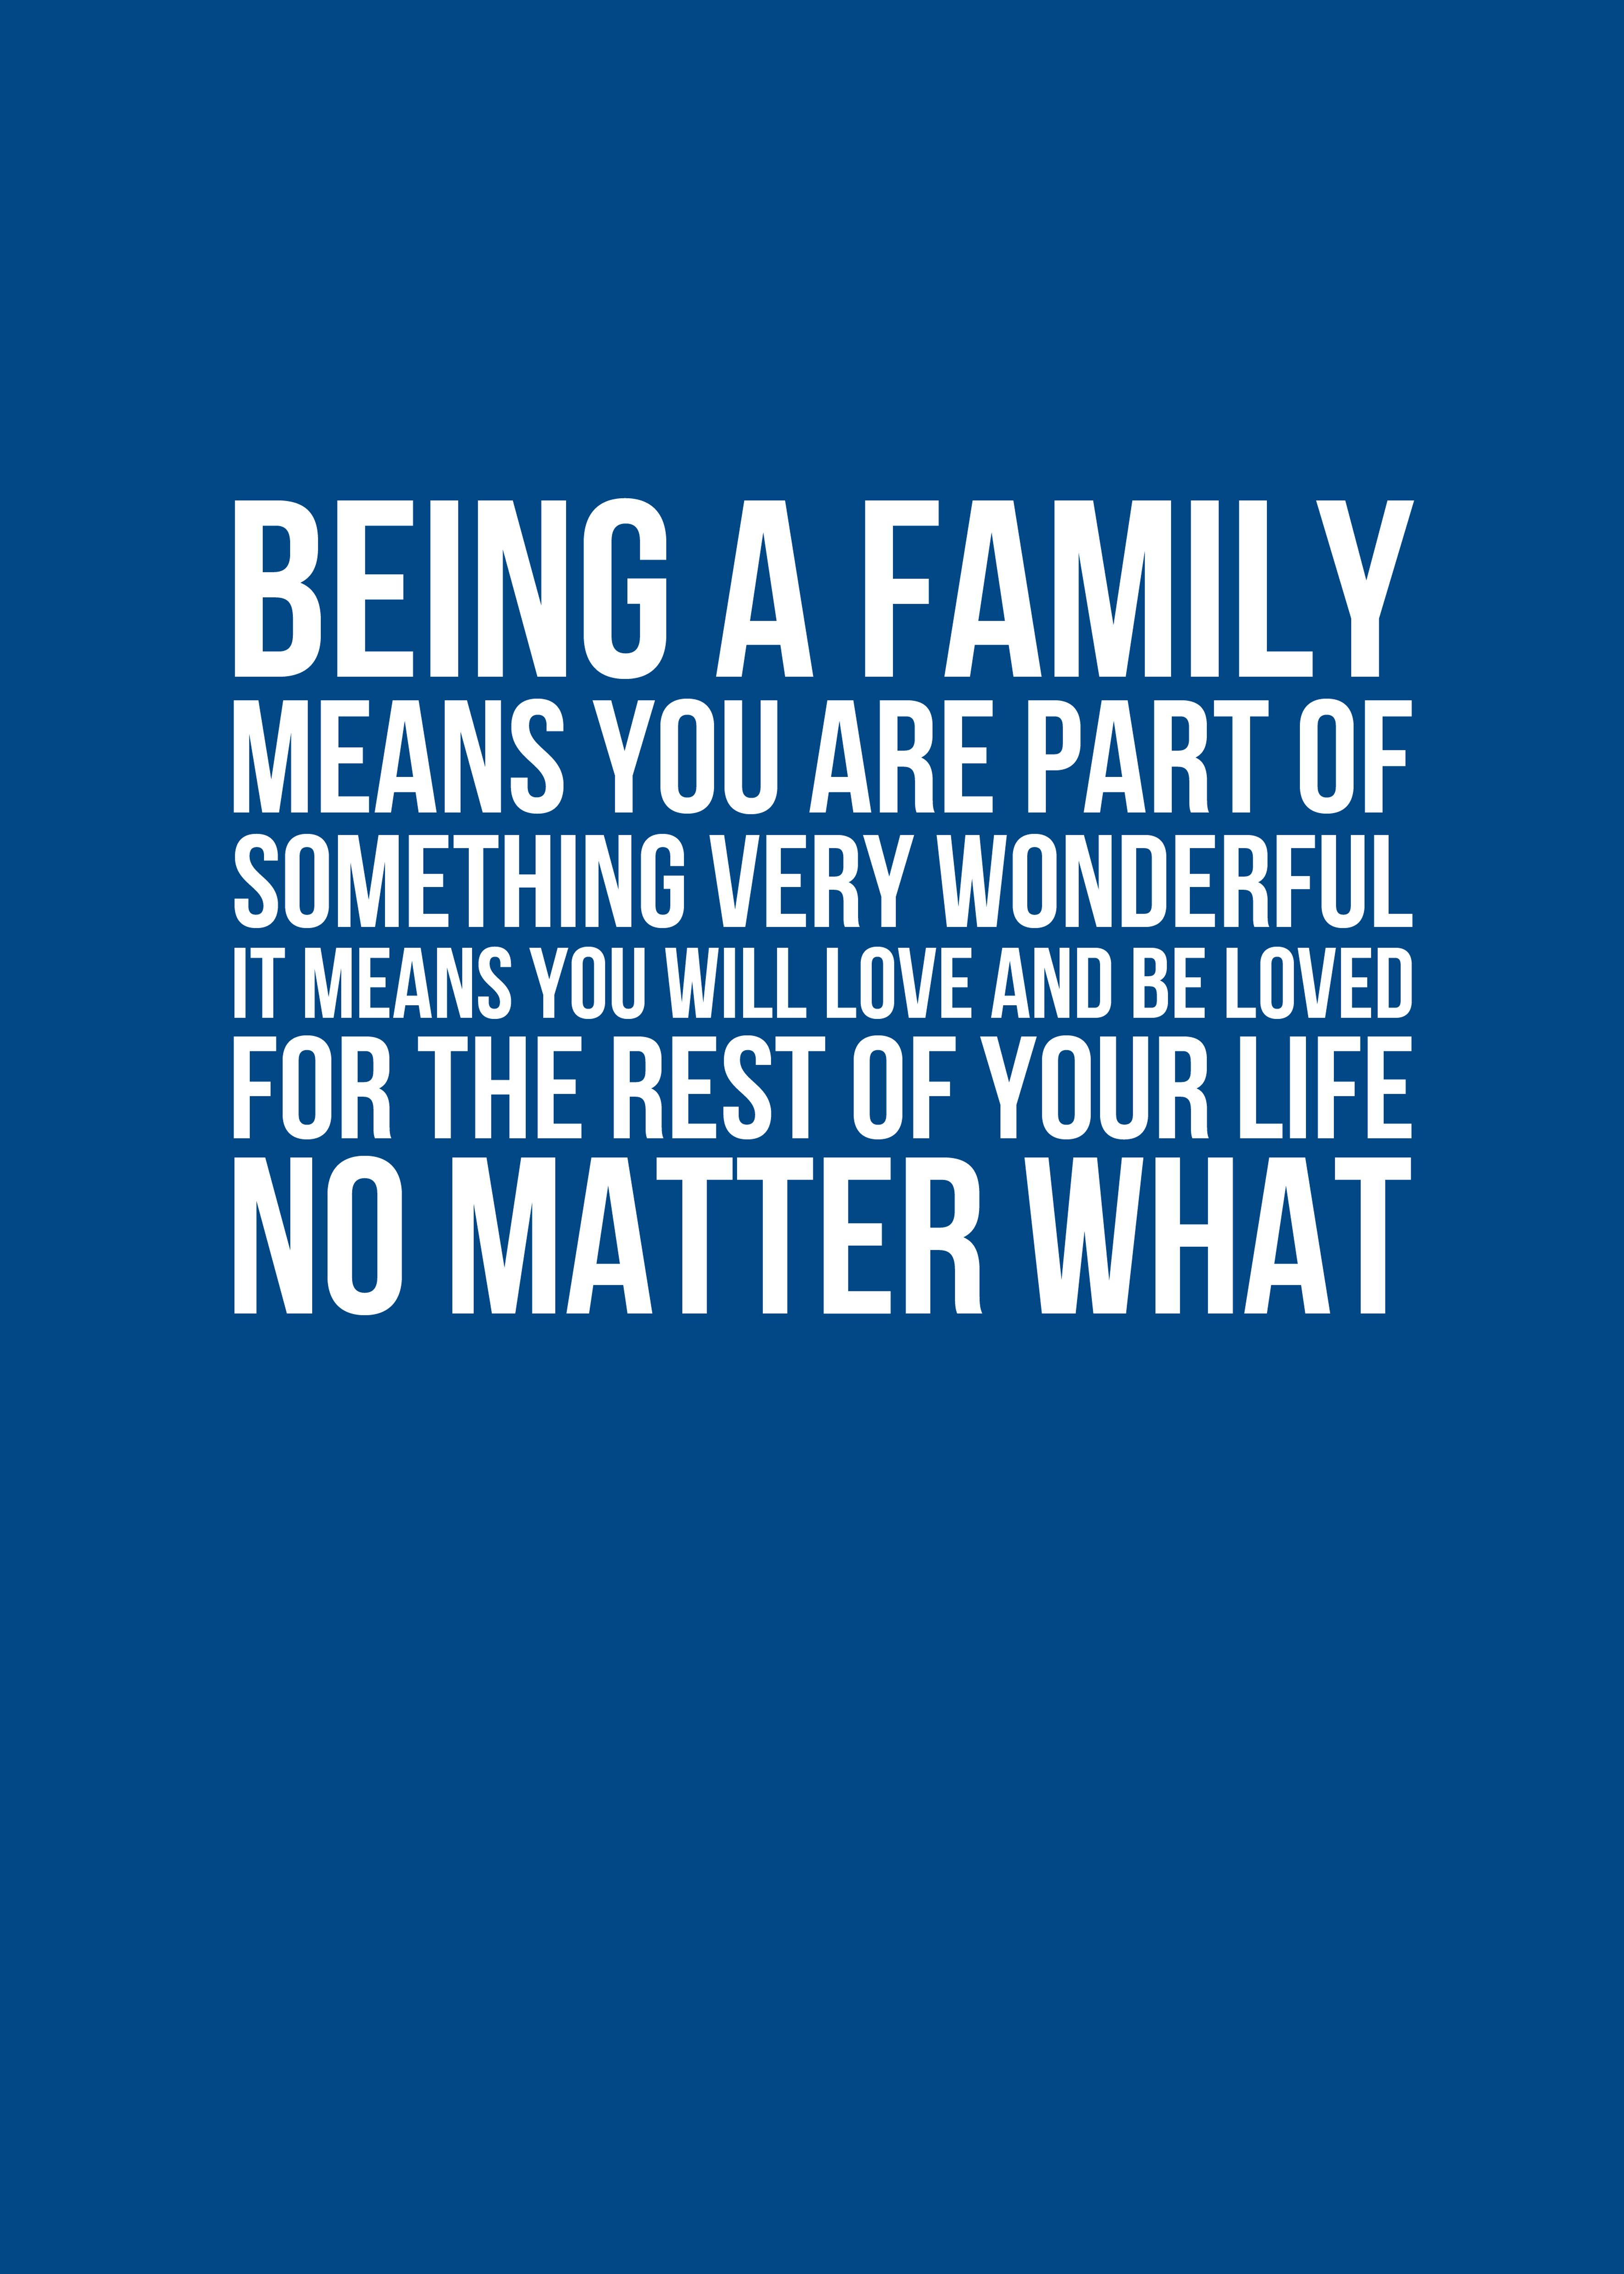 Life Is Short So Be Sure To Enjoy Your Family Now Because When They Are Gone You Might Regret The Fact You D Family Quotes My Family Quotes Go For It